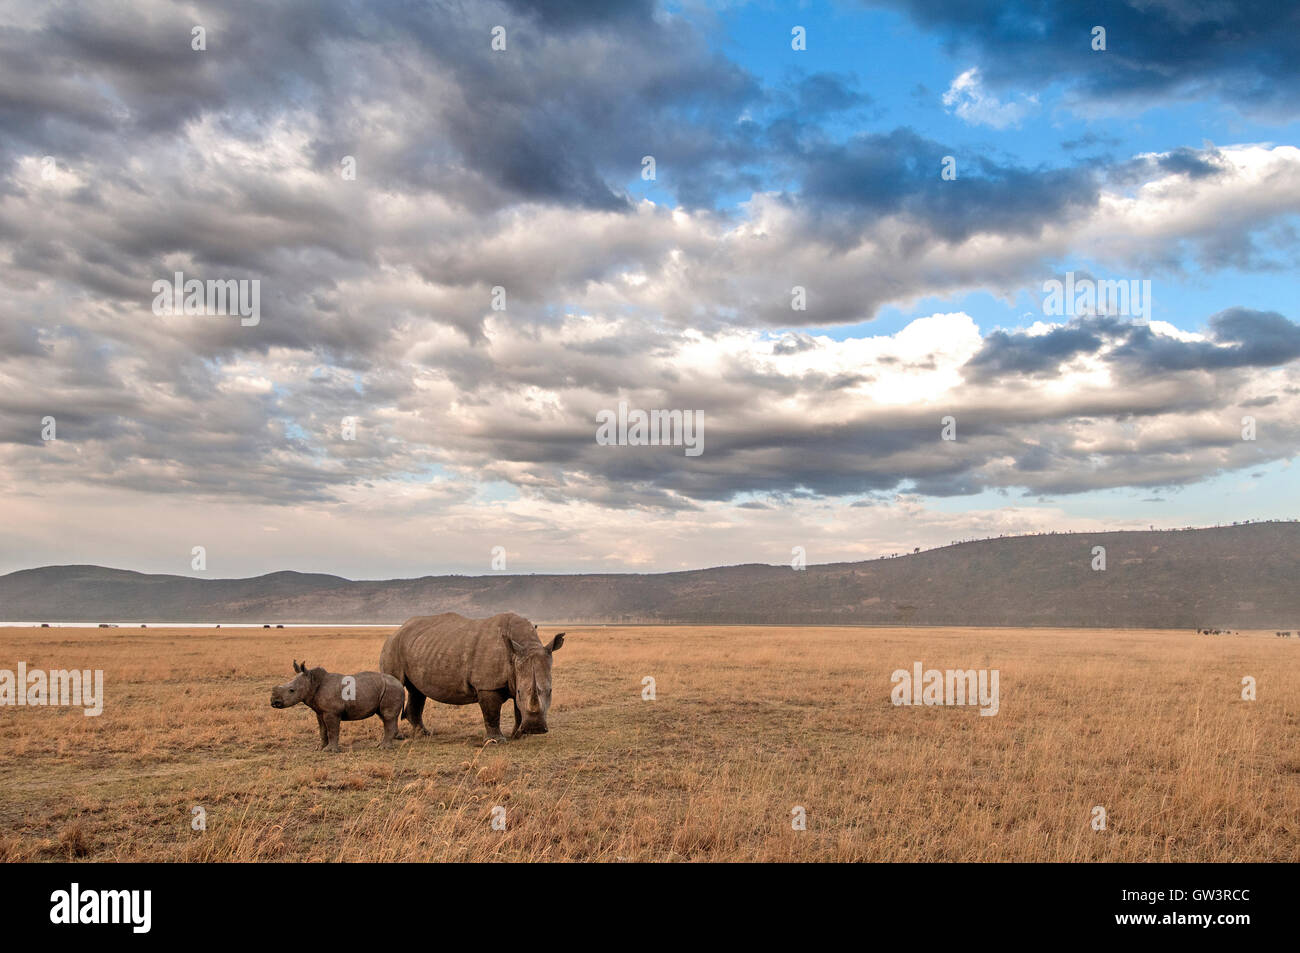 Eine Mutter Rhino und ihr Baby in Lake Nakuru National Park, Kenia. Stockbild